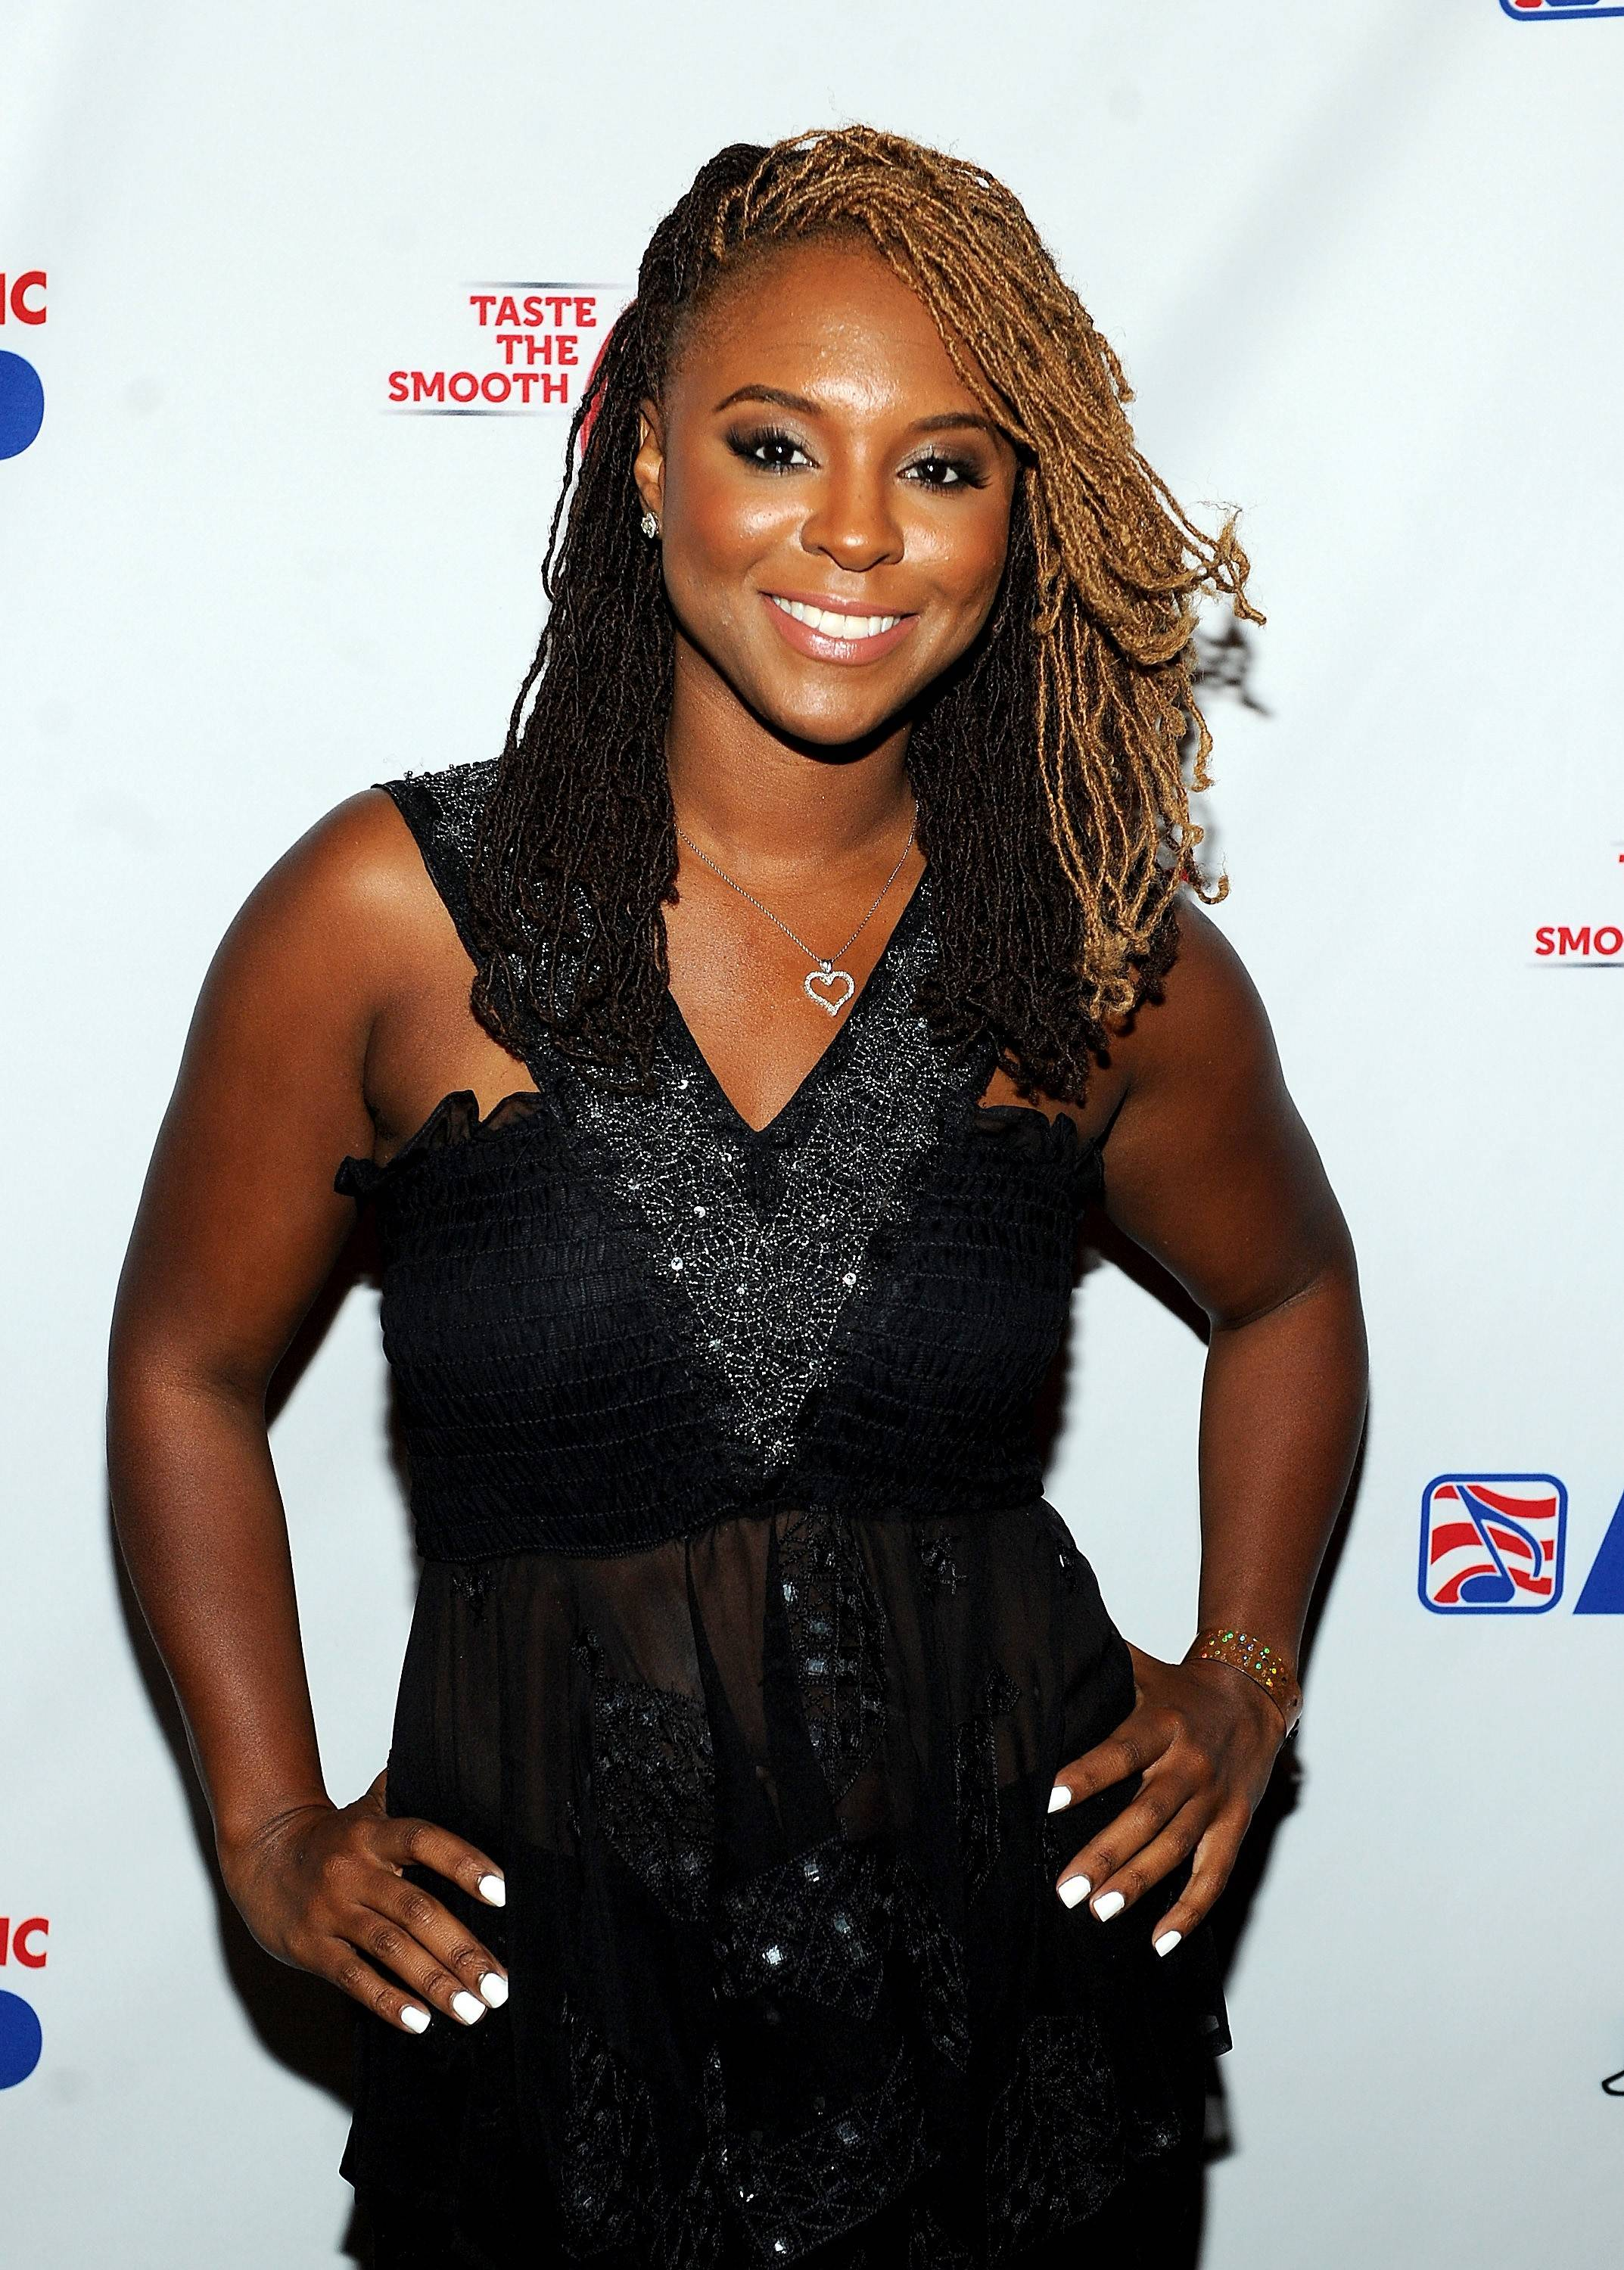 "Torrei Hart is among a group of exes having yet another moment in the spotlight, thanks to a new phenomenon in reality television shows: spinoffs based solely on the ex-wives and ex-girlfriends of famous folks. She and five other women will star on the new reality series, ""Atlanta Exes,"" that premieres Monday on VH1."